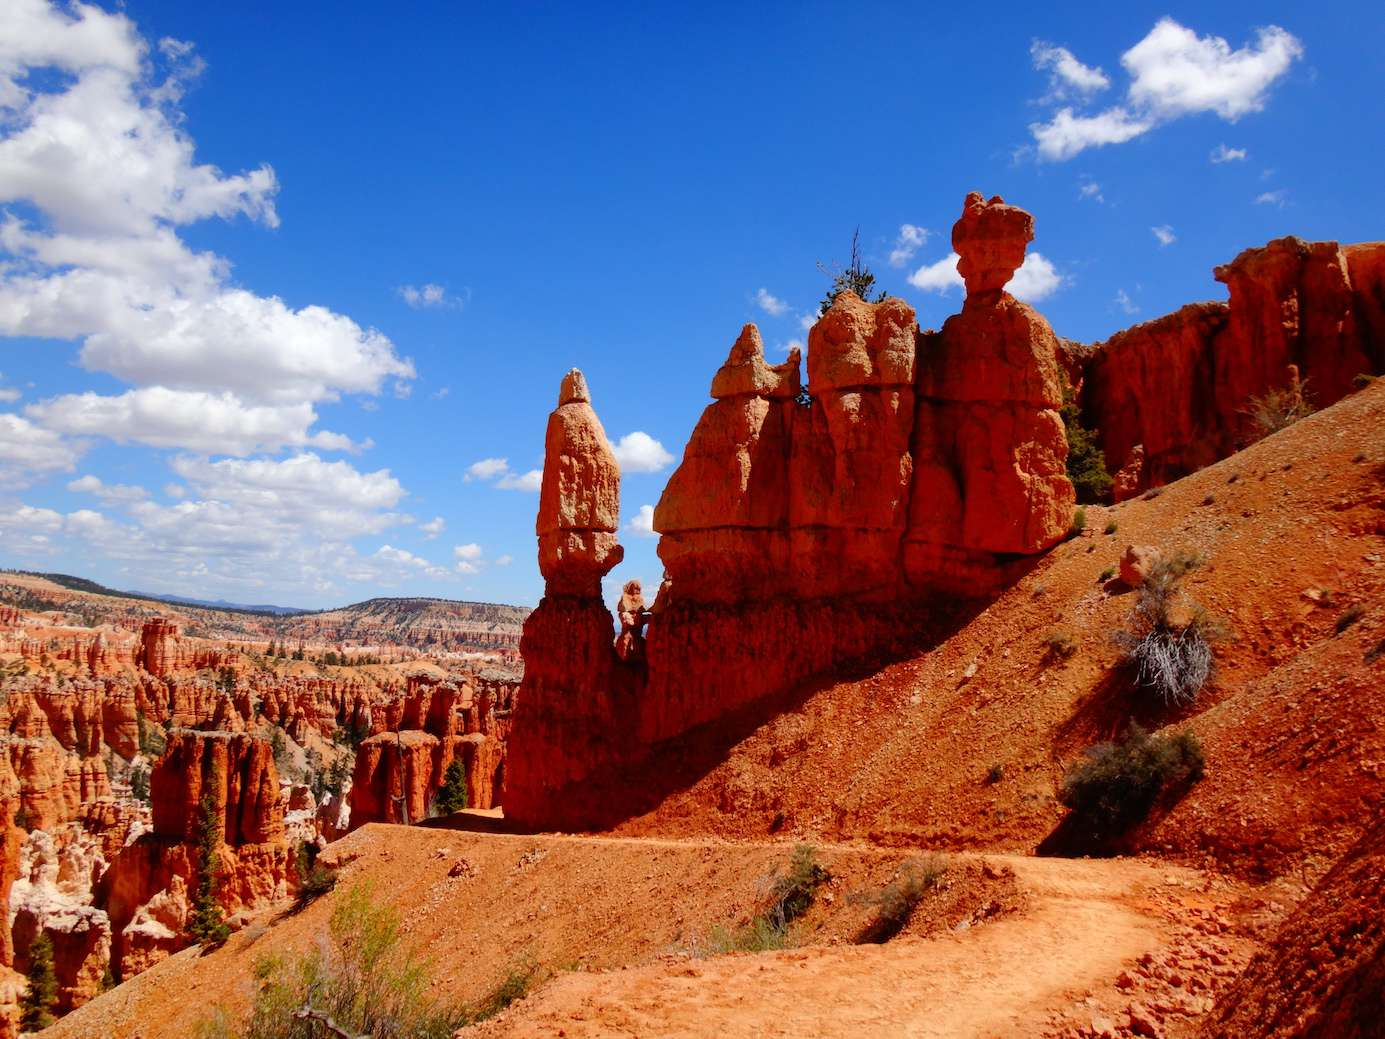 bryce canyon national park chat Download bryce canyon stock photos affordable and search from millions of royalty free images, photos and vectors.